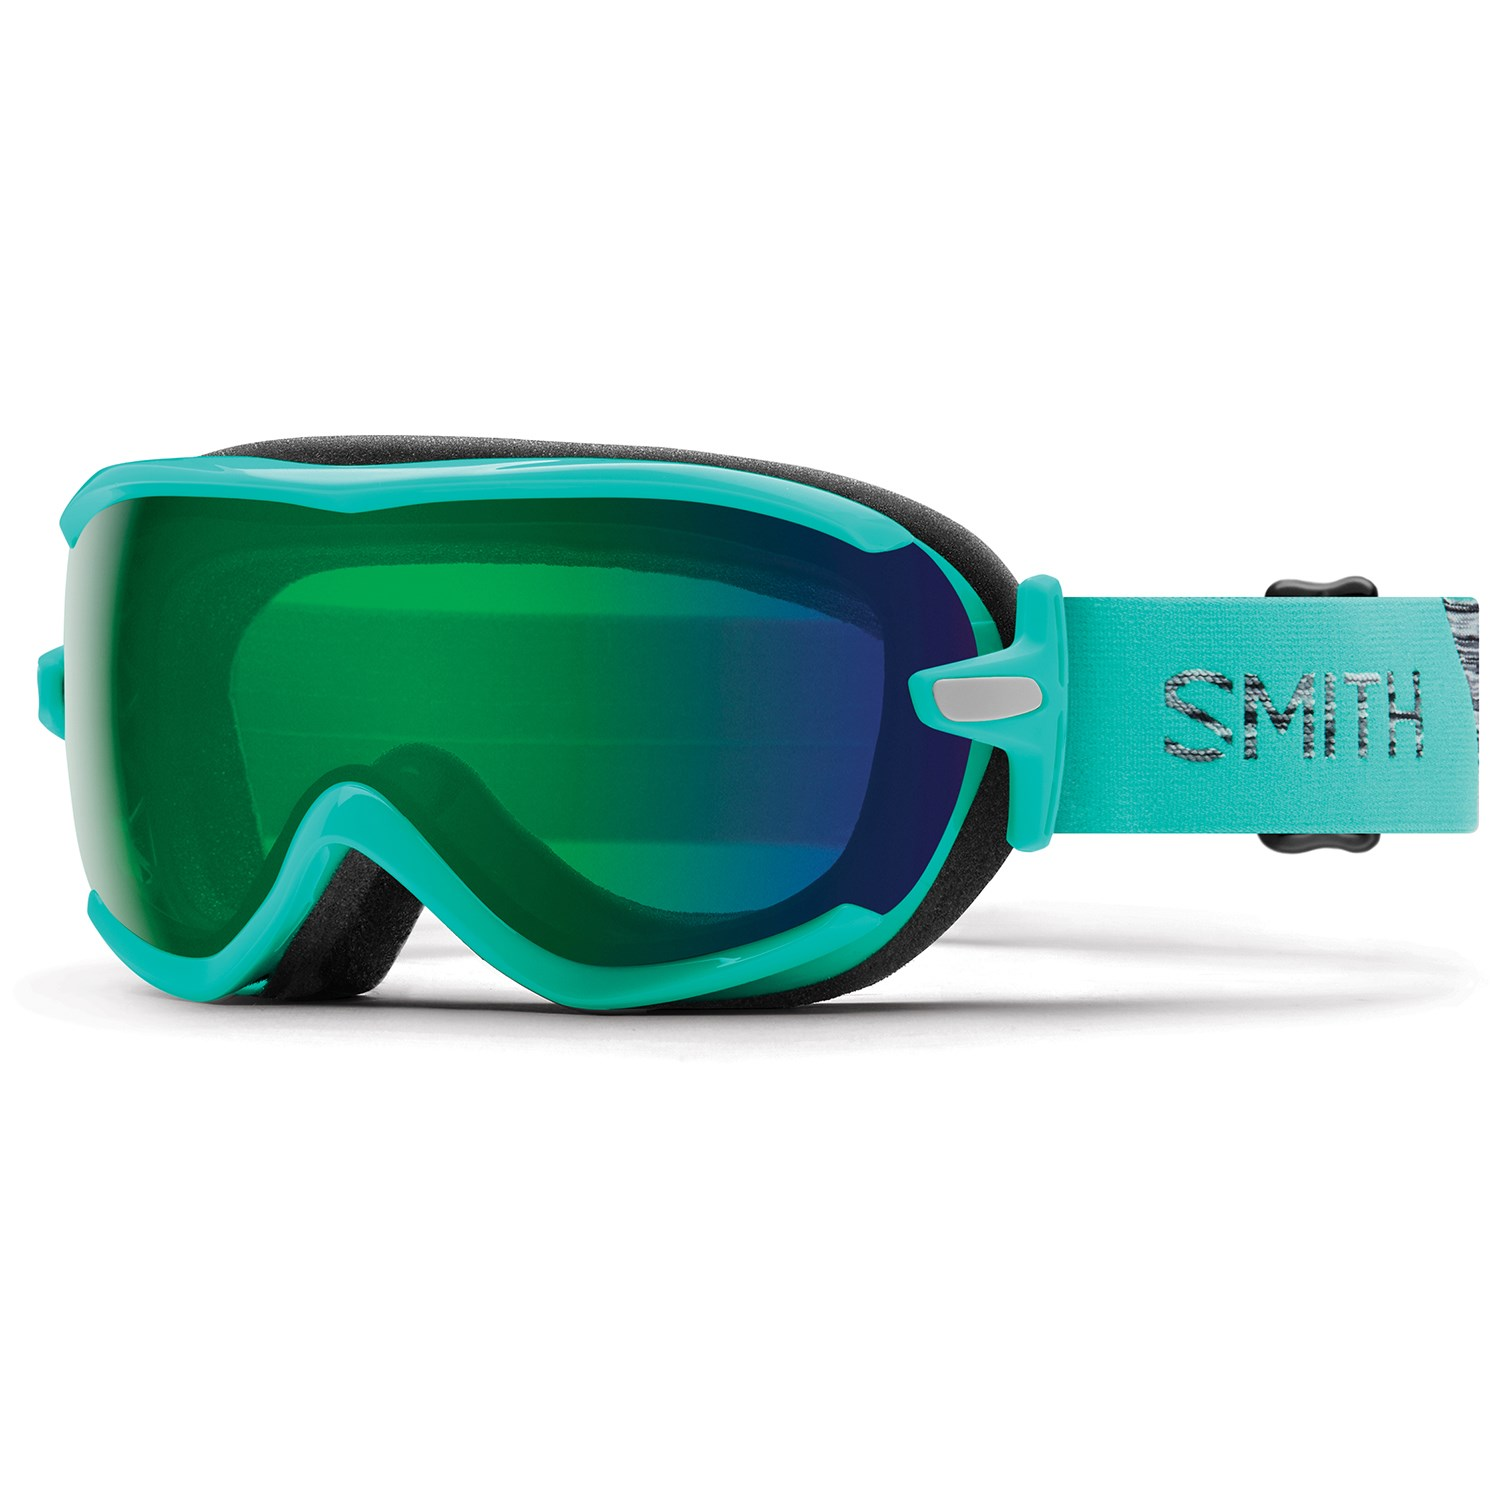 37e9f977ee9d1 Smith Virtue Goggles - Women s